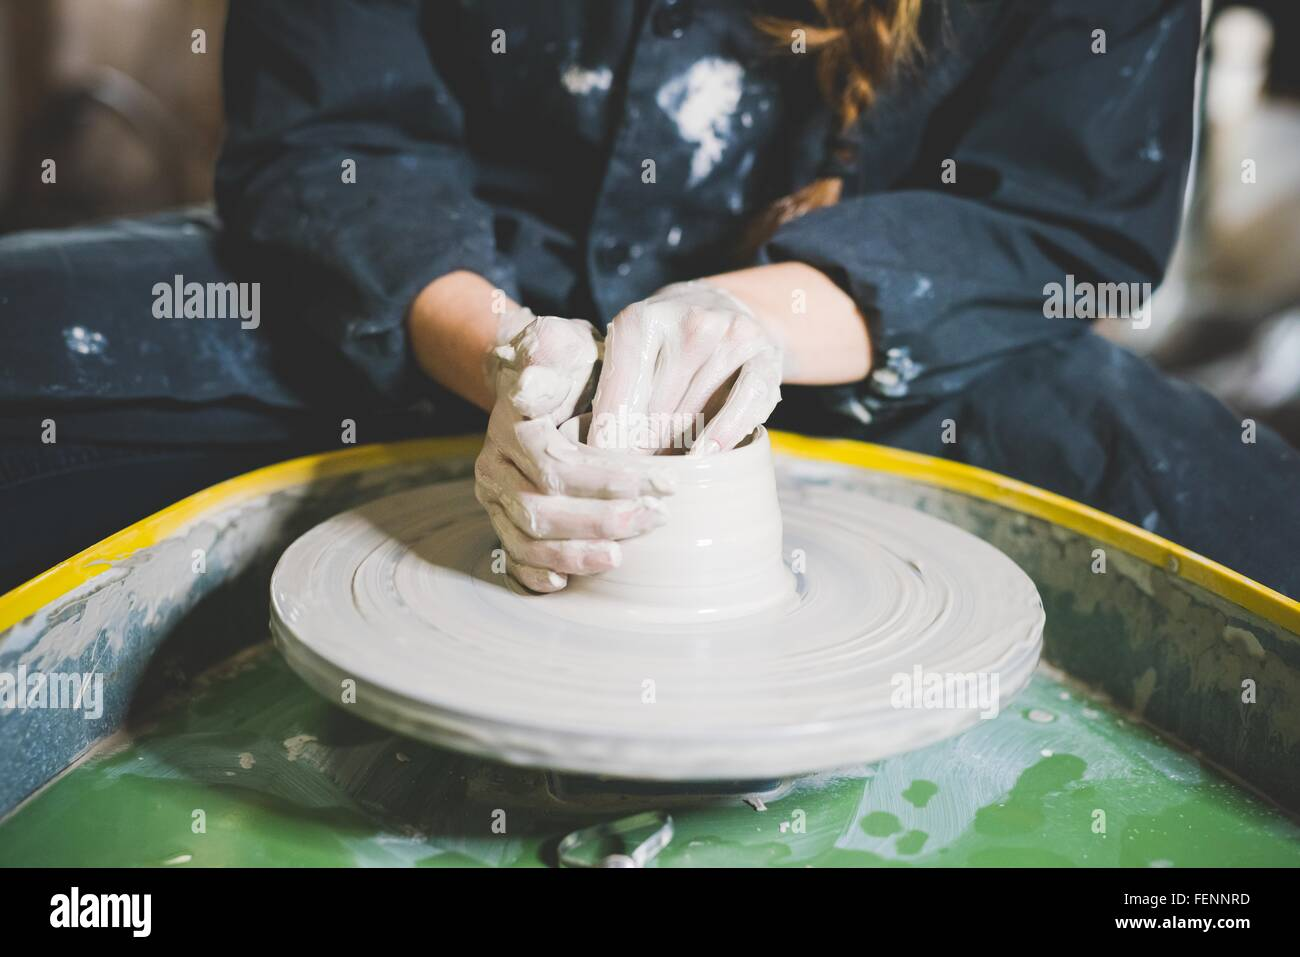 Cropped view of young woman sitting at pottery wheel making clay pot - Stock Image